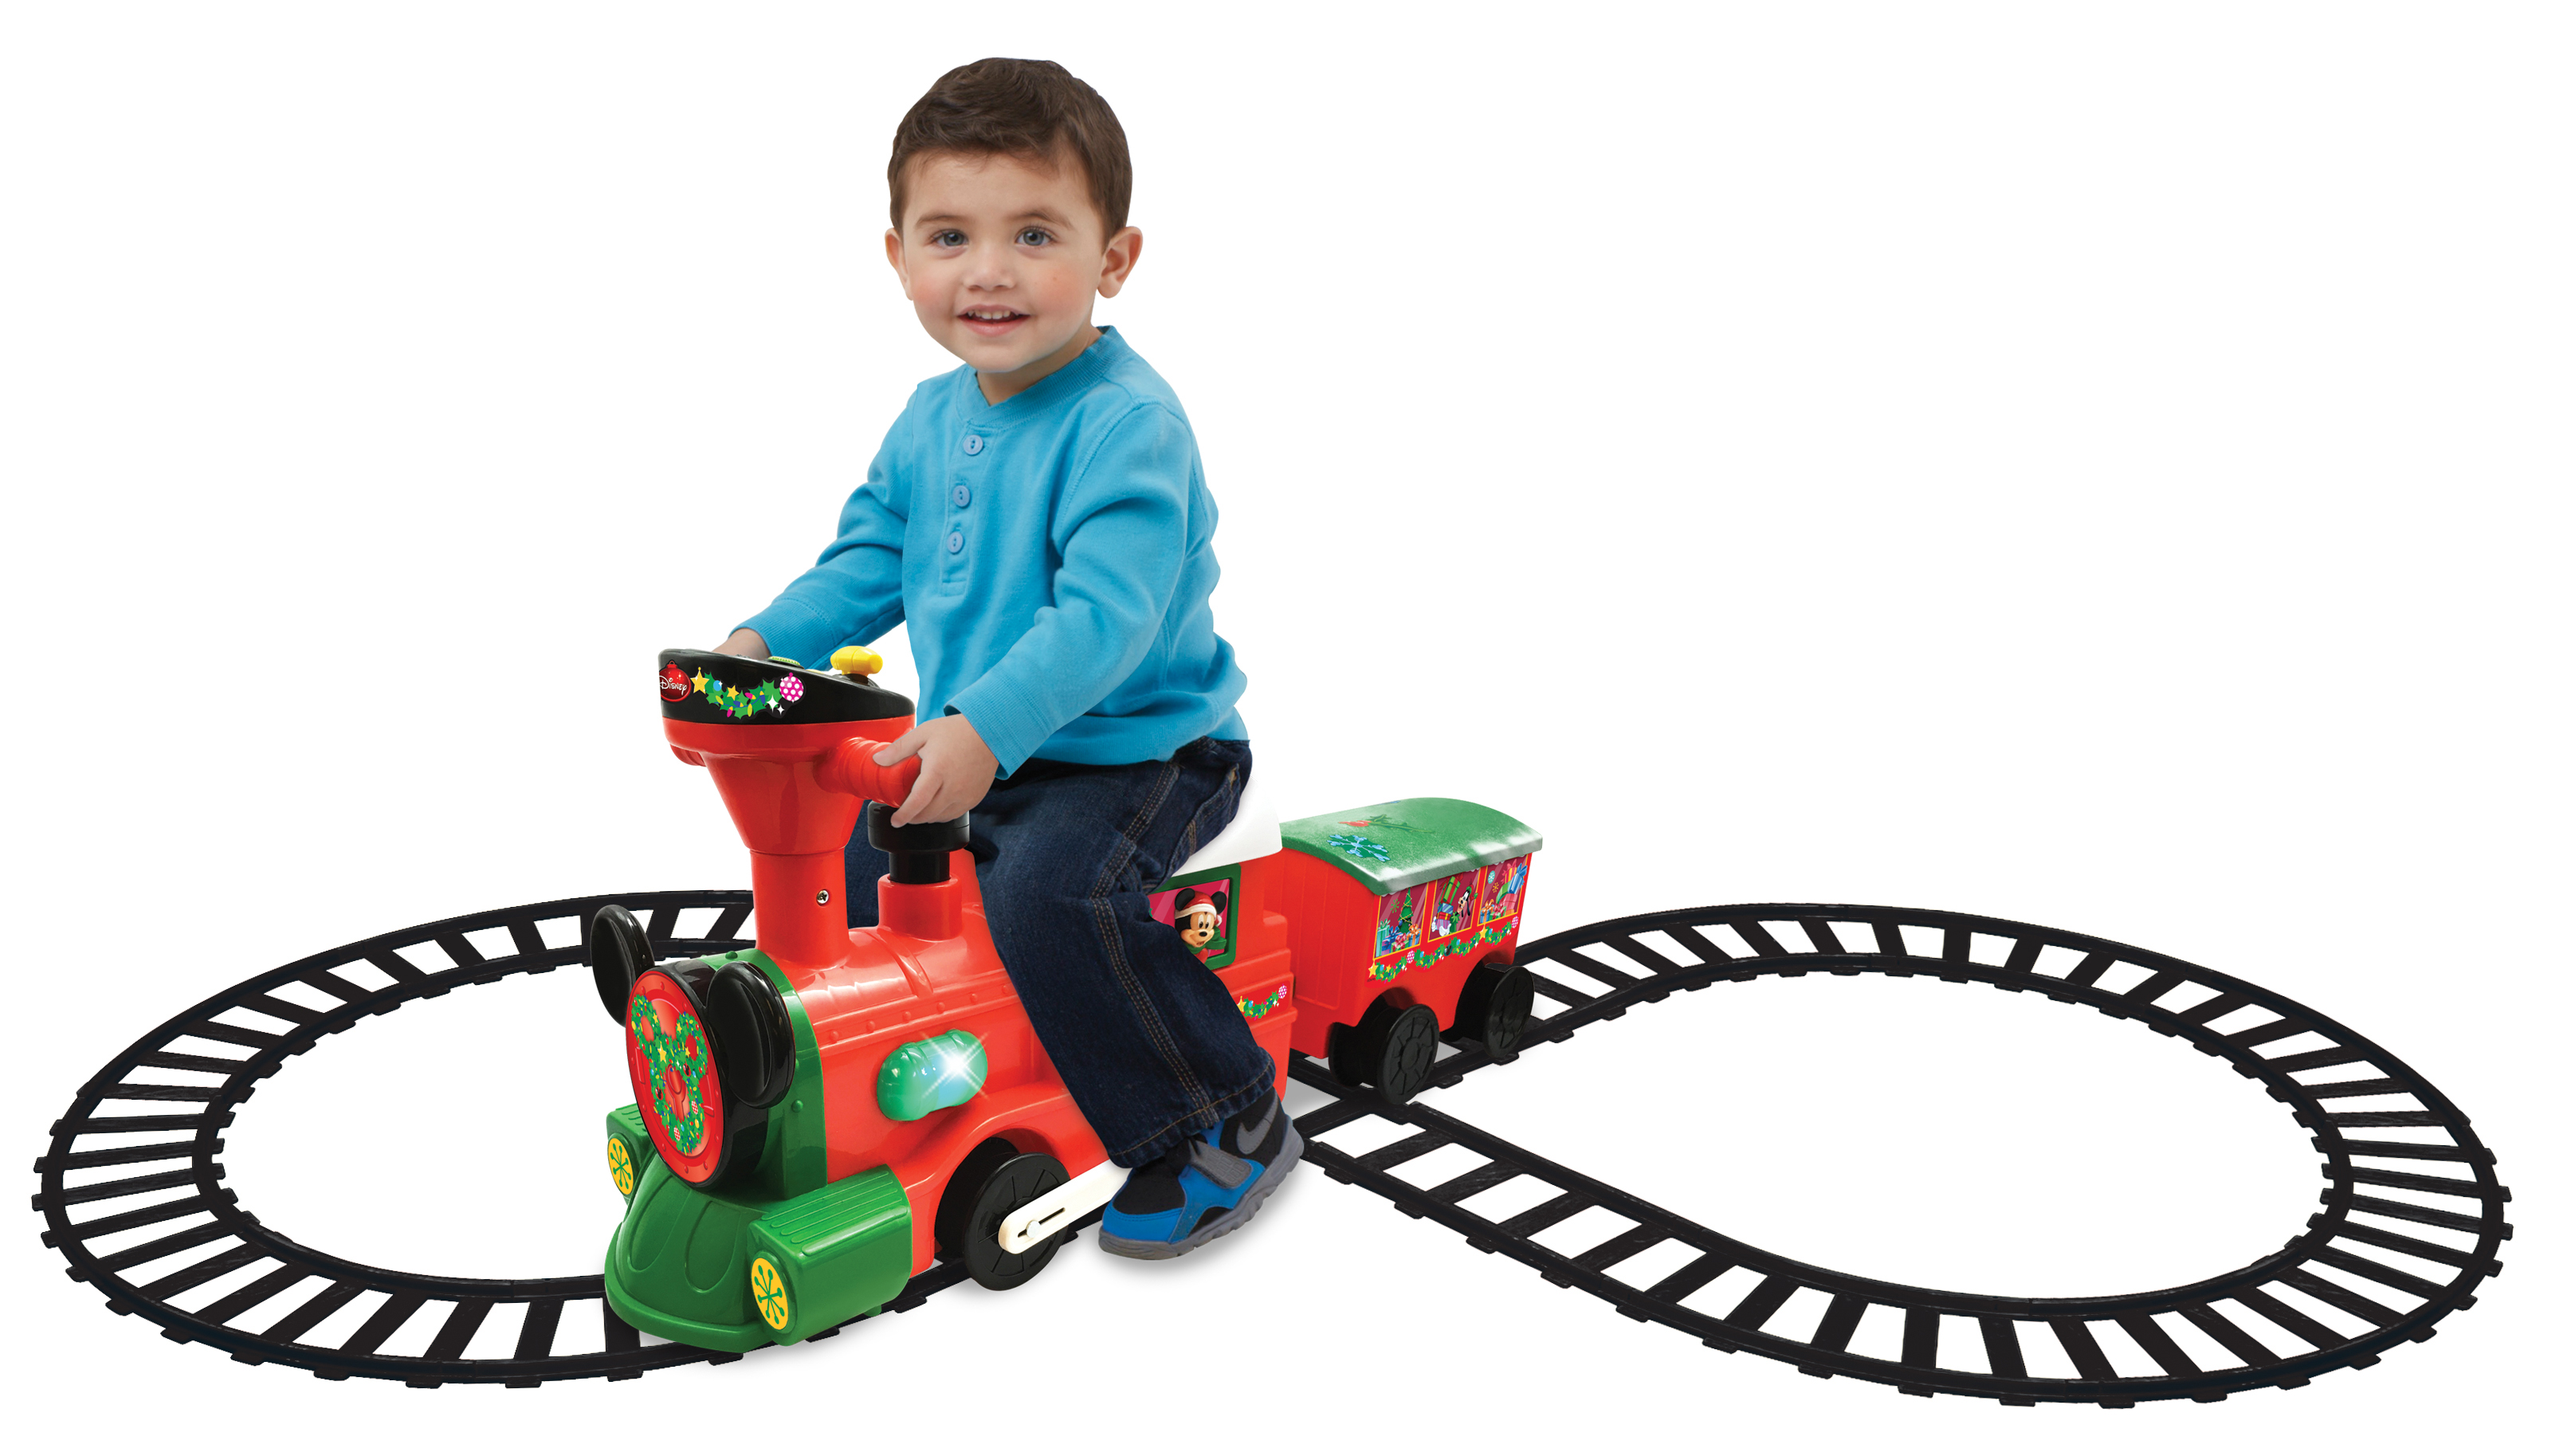 Disney Holiday Mickey Mouse and Friends 2 in 1 Battery Powered Train with Tracks by Kiddieland